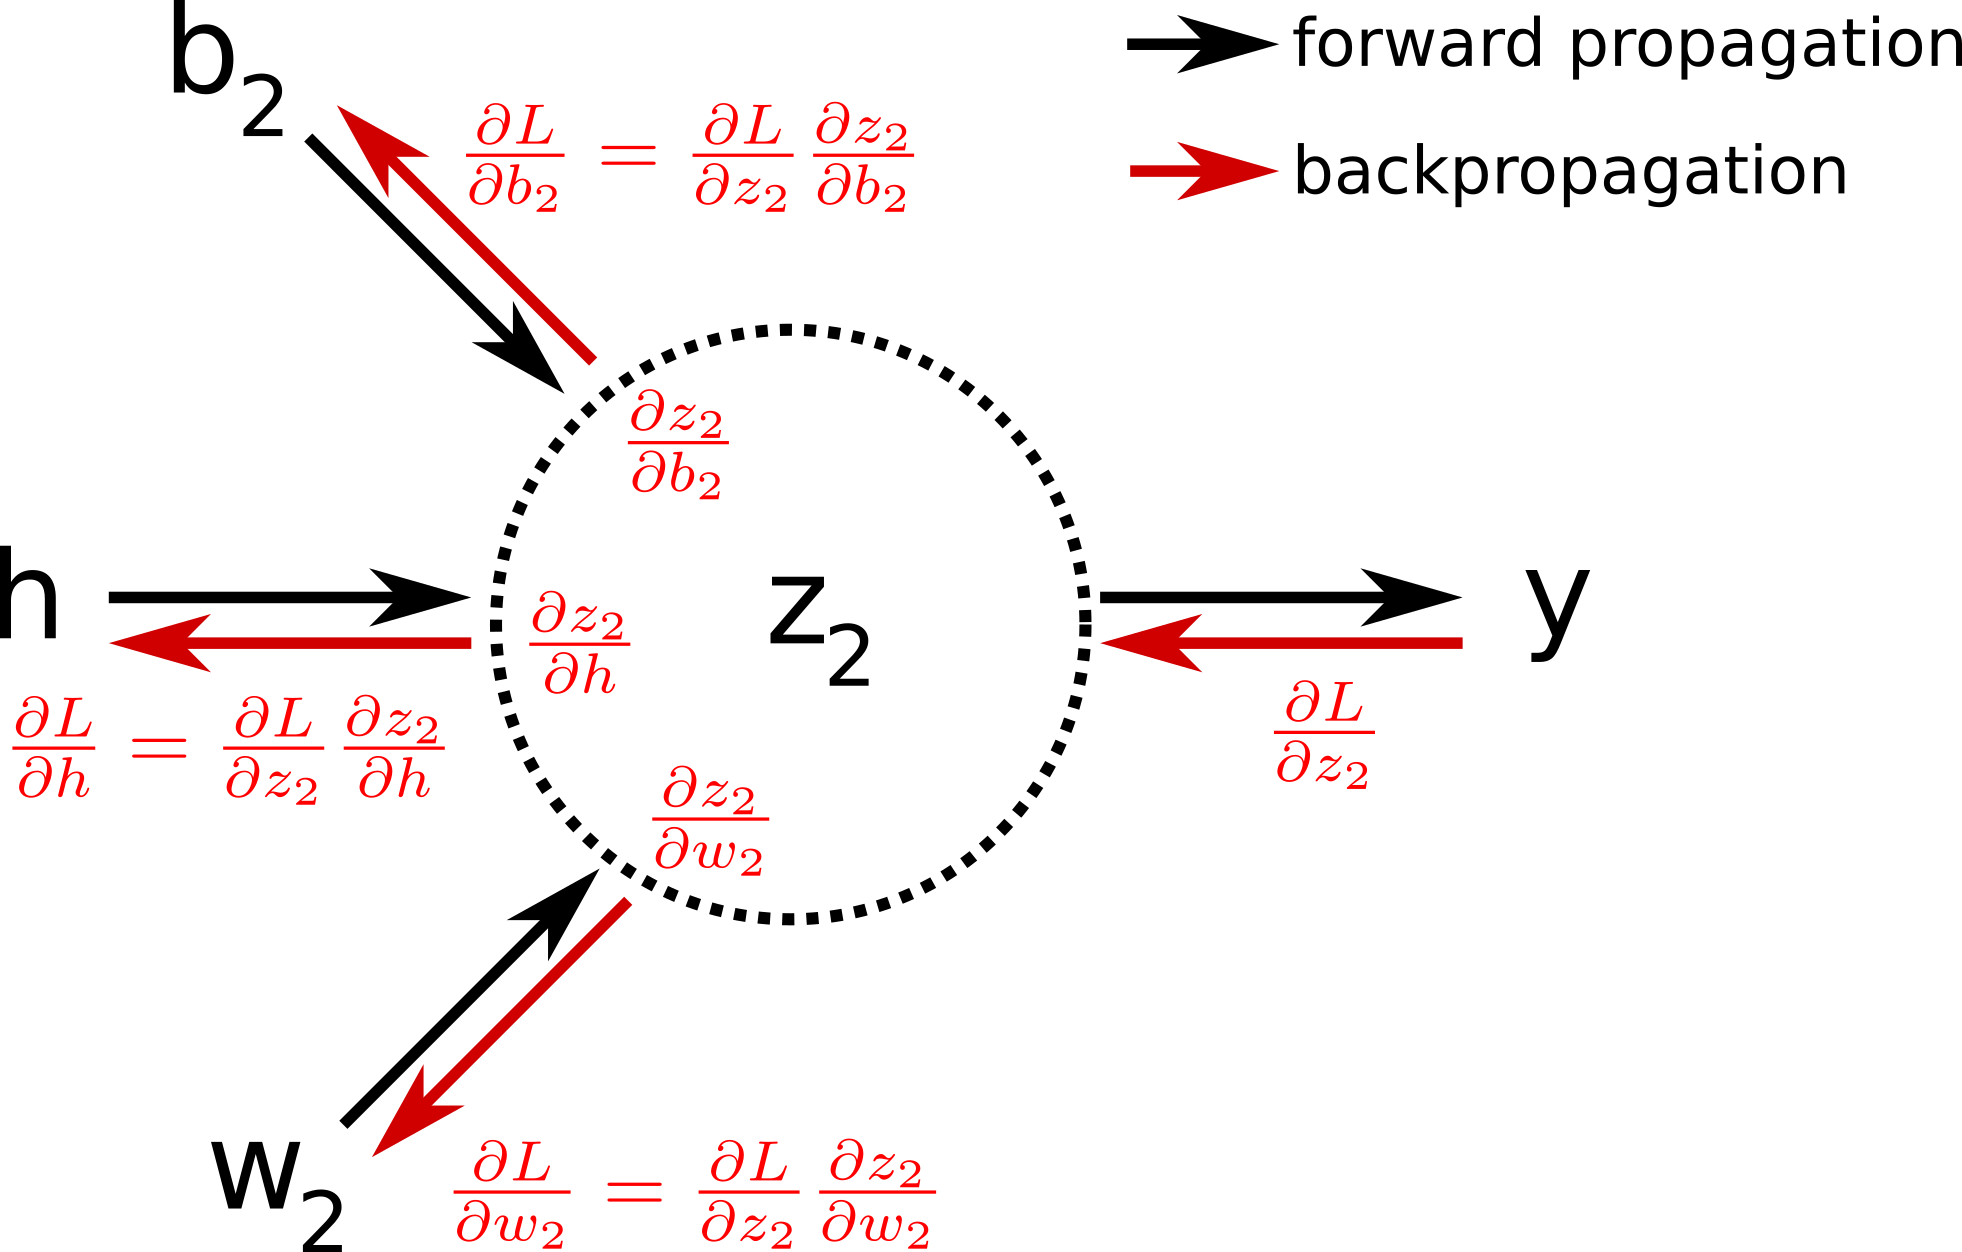 Illustration of the backpropagation algorithm.